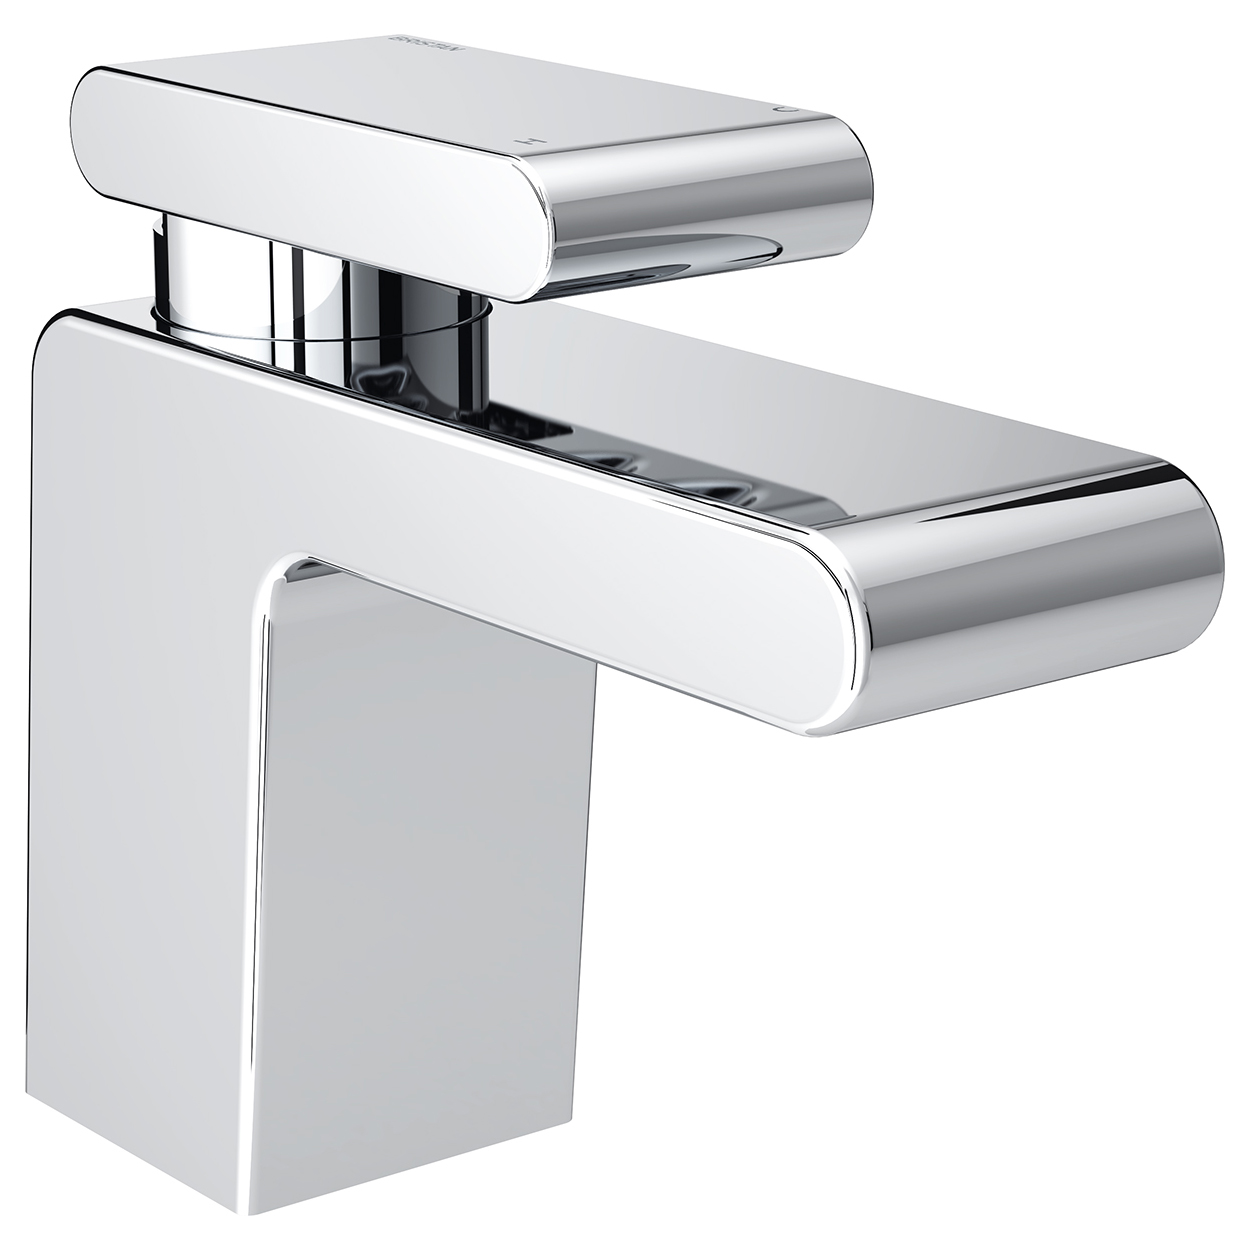 Bristan Pivot Mono Basin Mixer Tap with Clicker Waste - Chrome